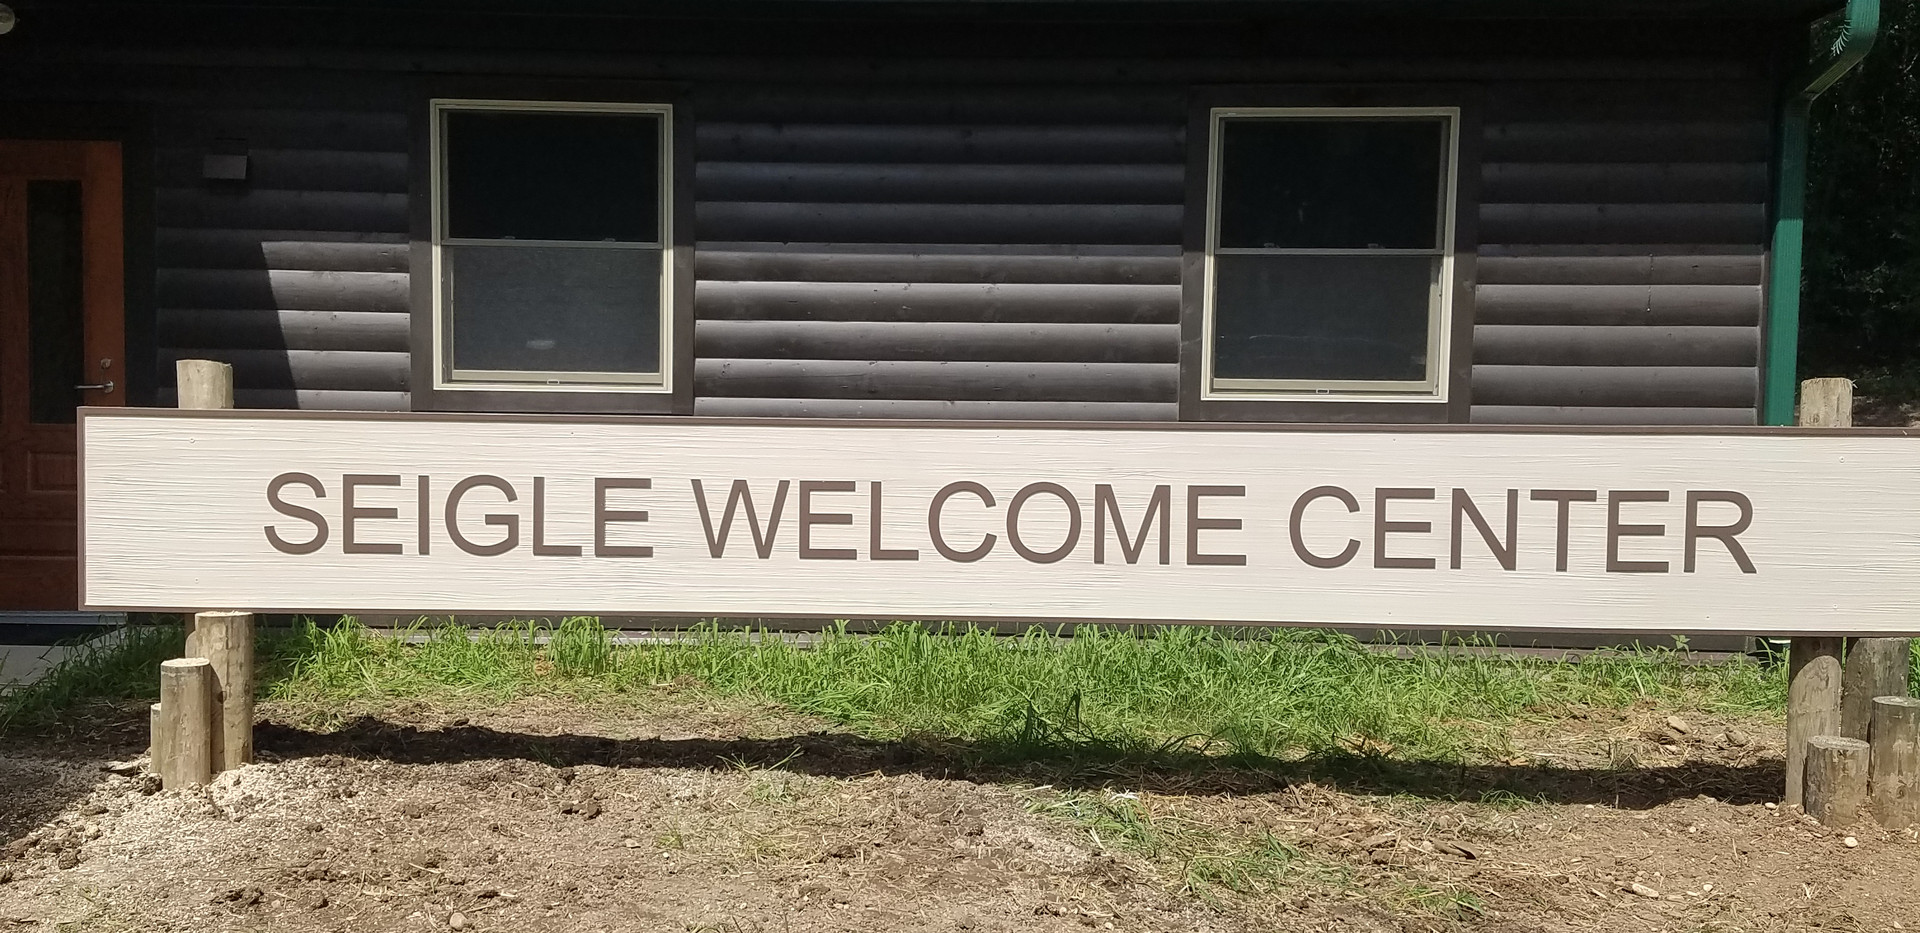 Seigle WelcomeCenter, WI